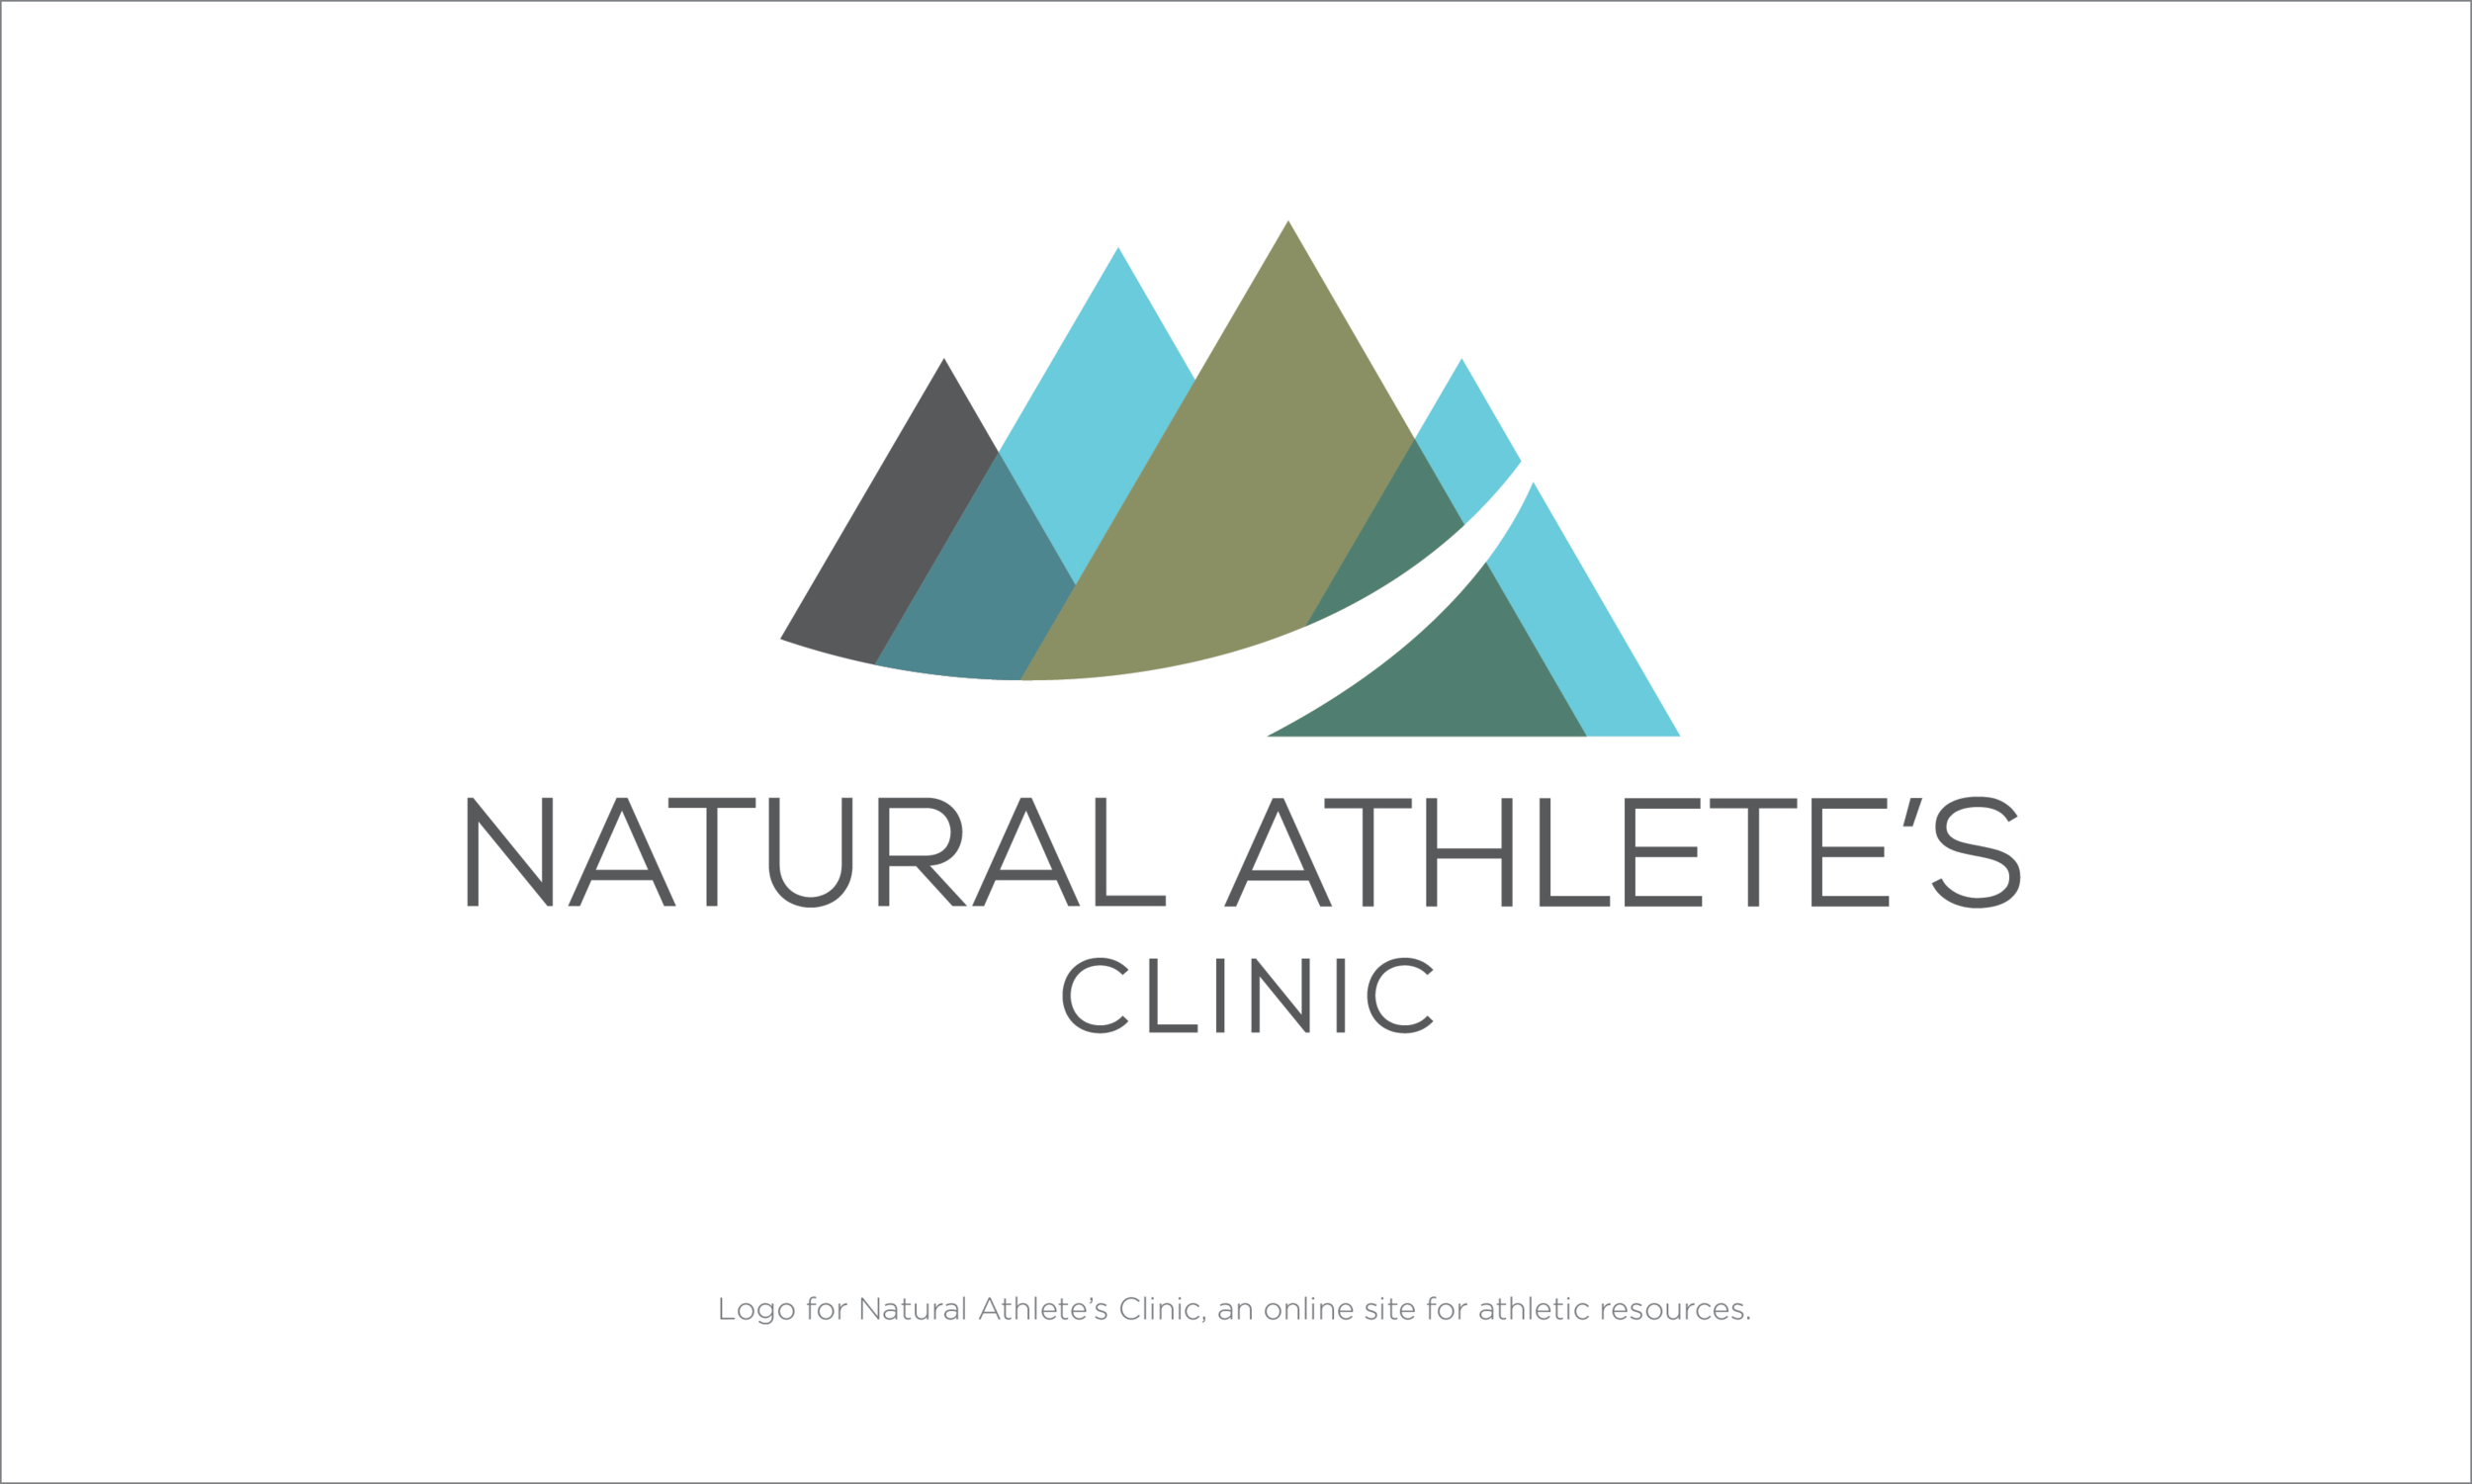 Natural Athlete's Clinic